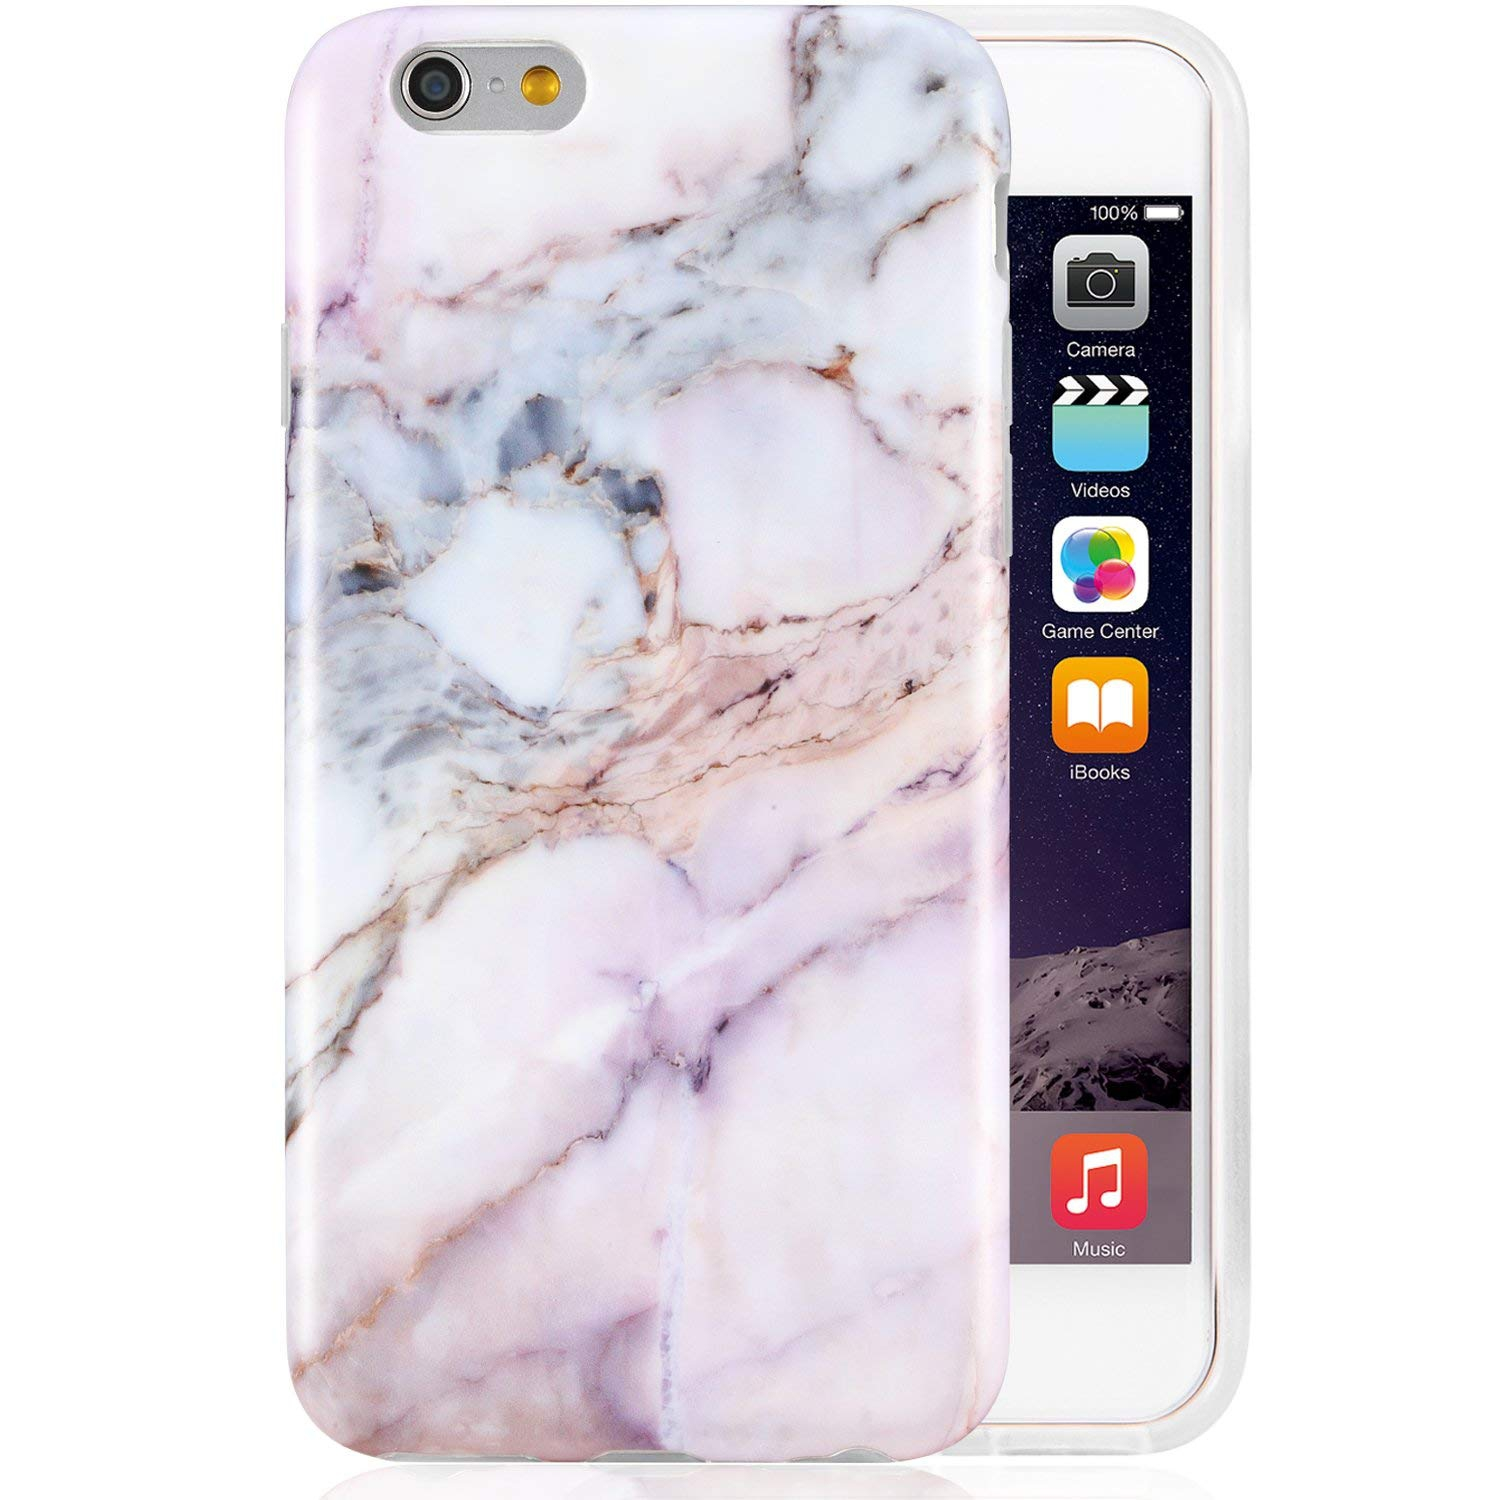 iPhone 6 Case, iPhone 6s Case,Pink Marble for Girls,VIVIBIN Shock Absorption IMD Soft TPU Gel Protective Case for Regula iPhon